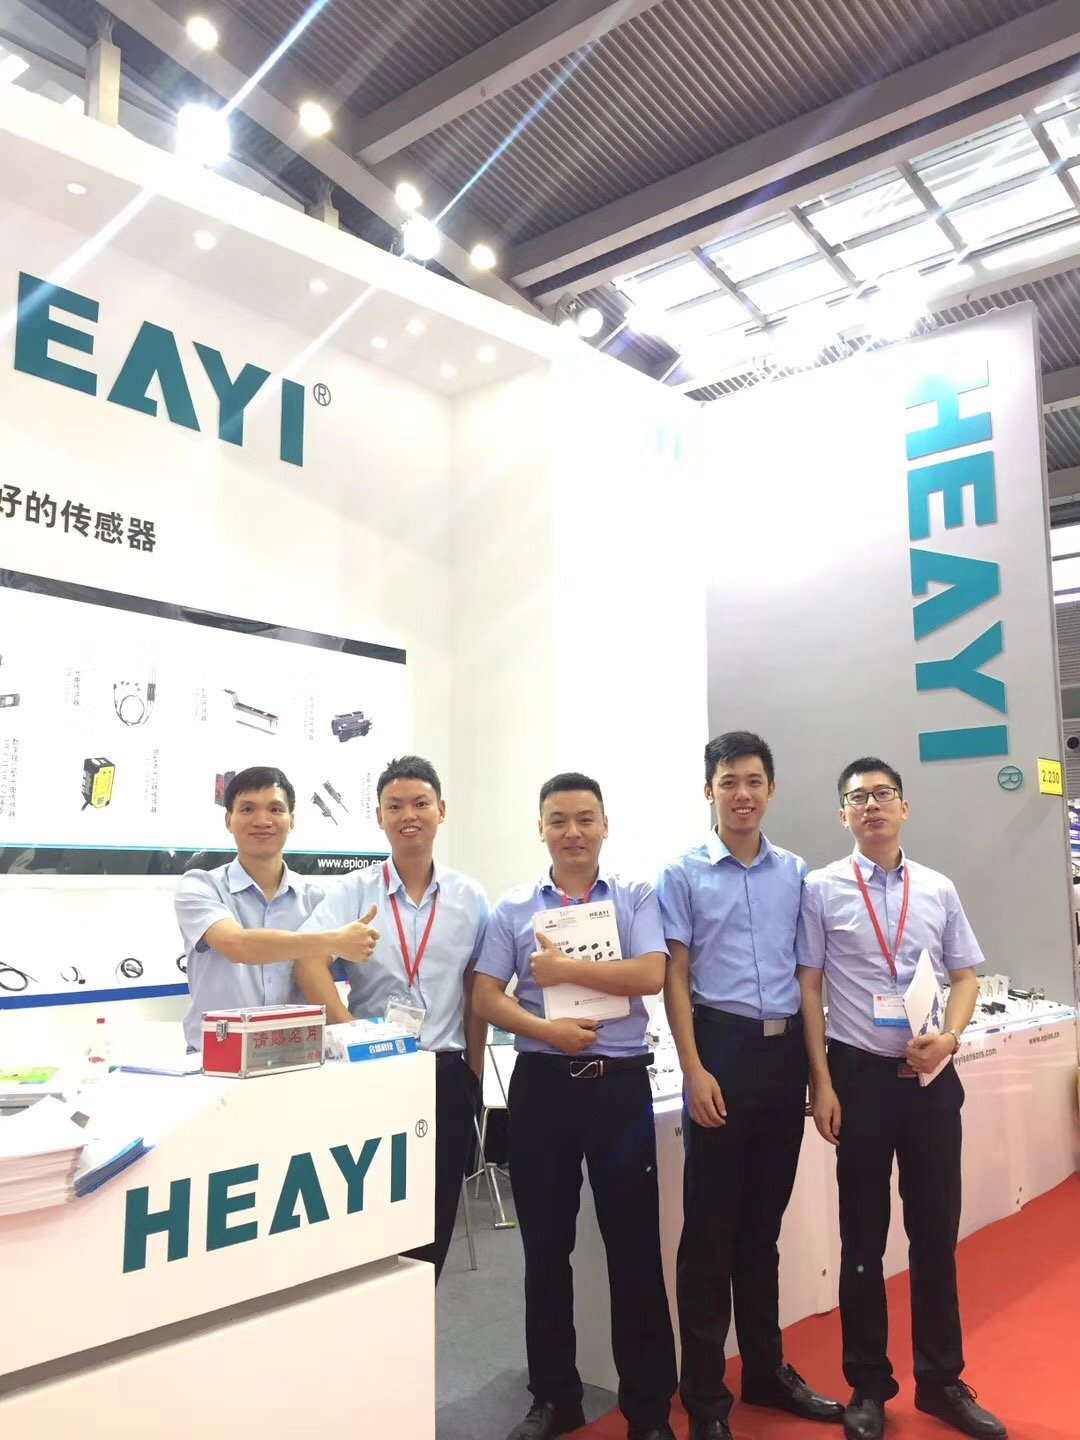 Heyi-2018 the 22th Southern China international industrial automation exhibition News About Proximit-2